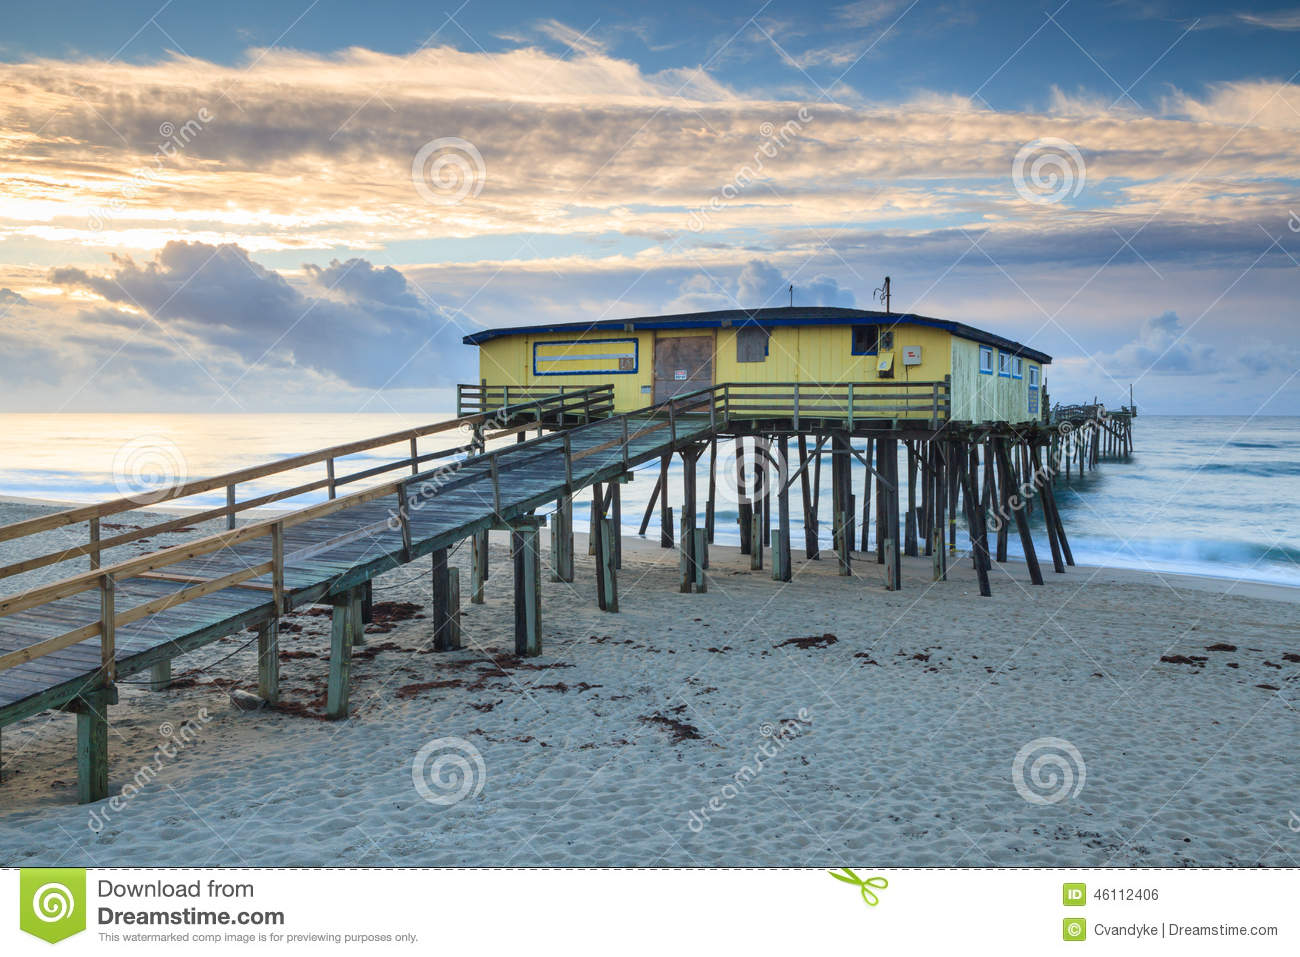 Abandoned fishing pier outer banks north carolina stock for Fishing outer banks nc